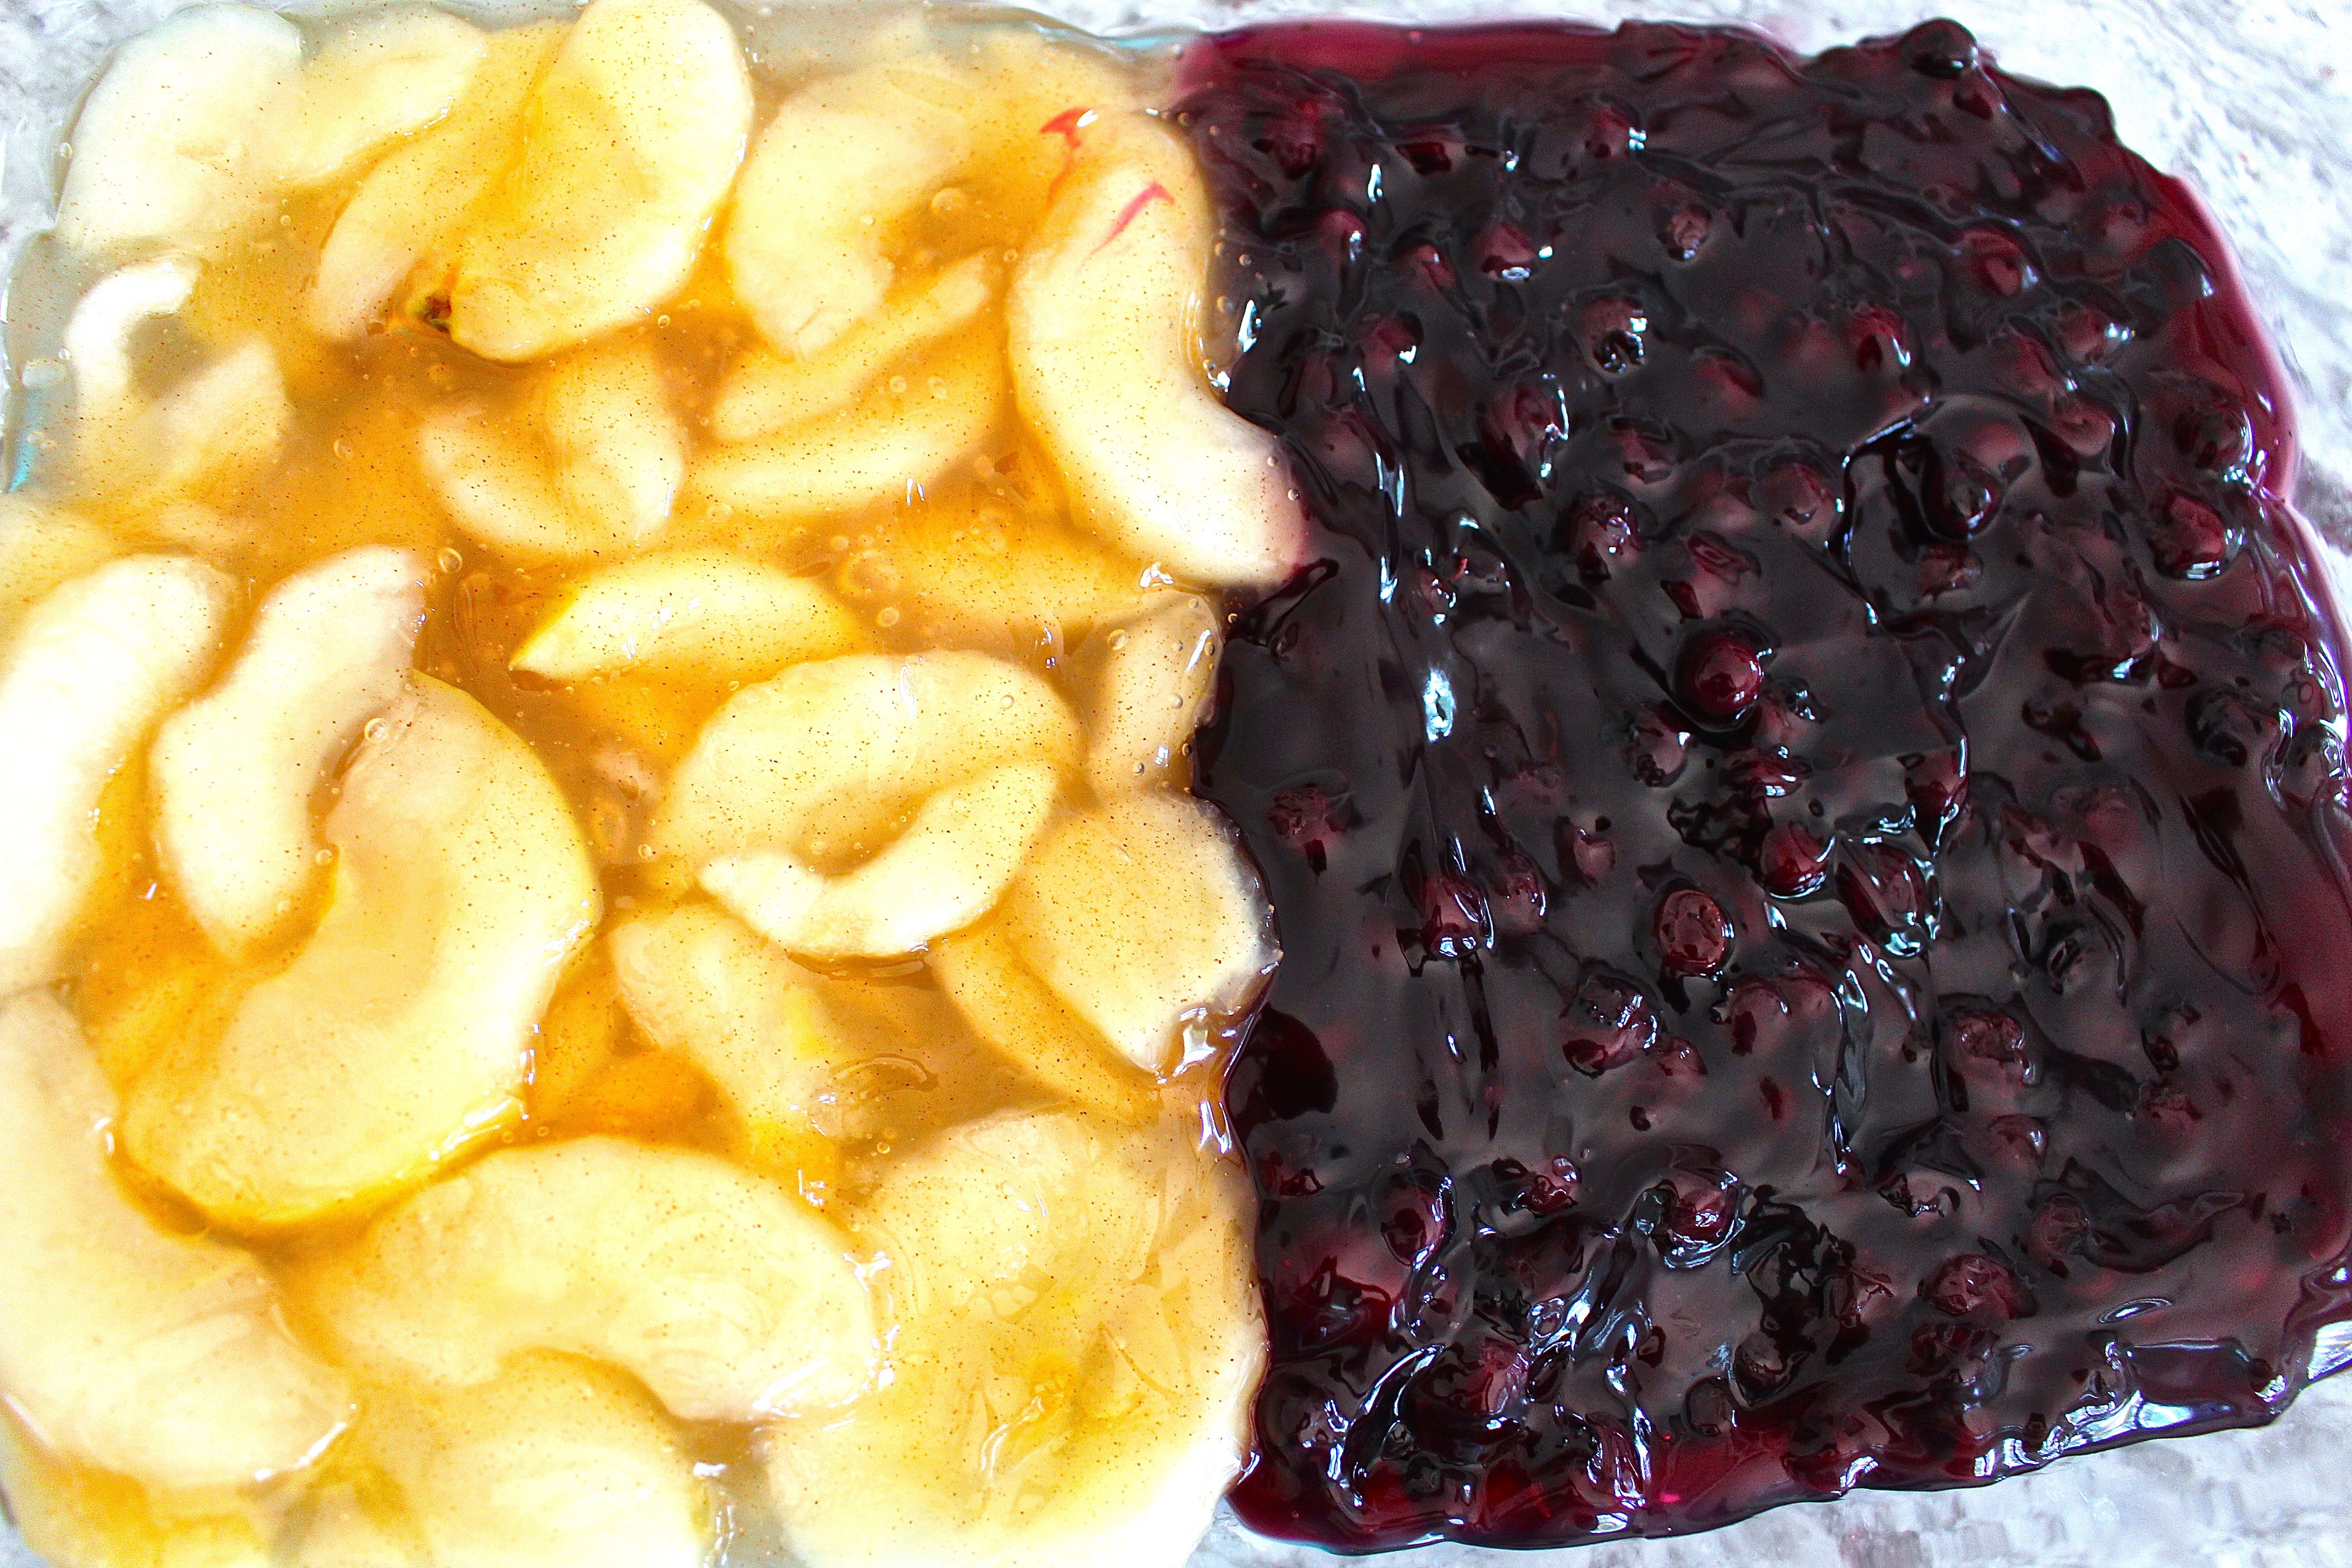 Easy Dessert Recipe - Dump Cake with Blueberries and Apples